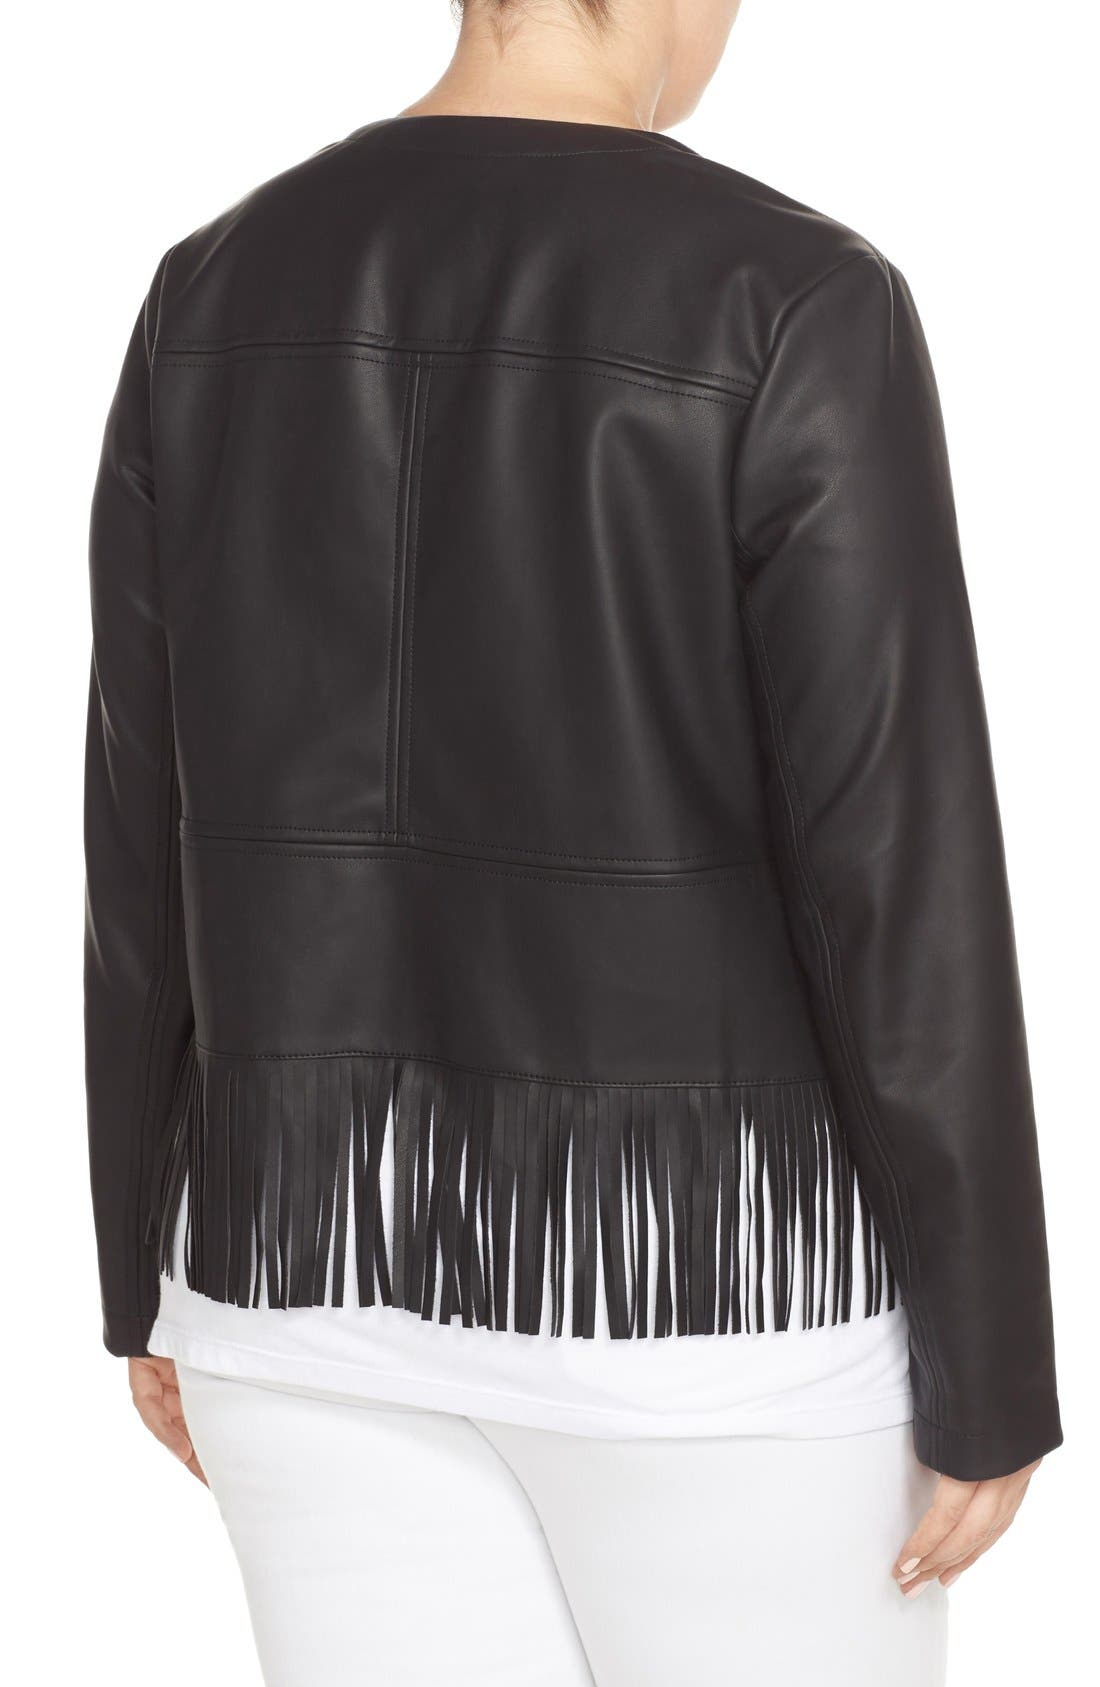 Alternate Image 2  - Bernardo Fringe Faux Leather Jacket (Plus Size)